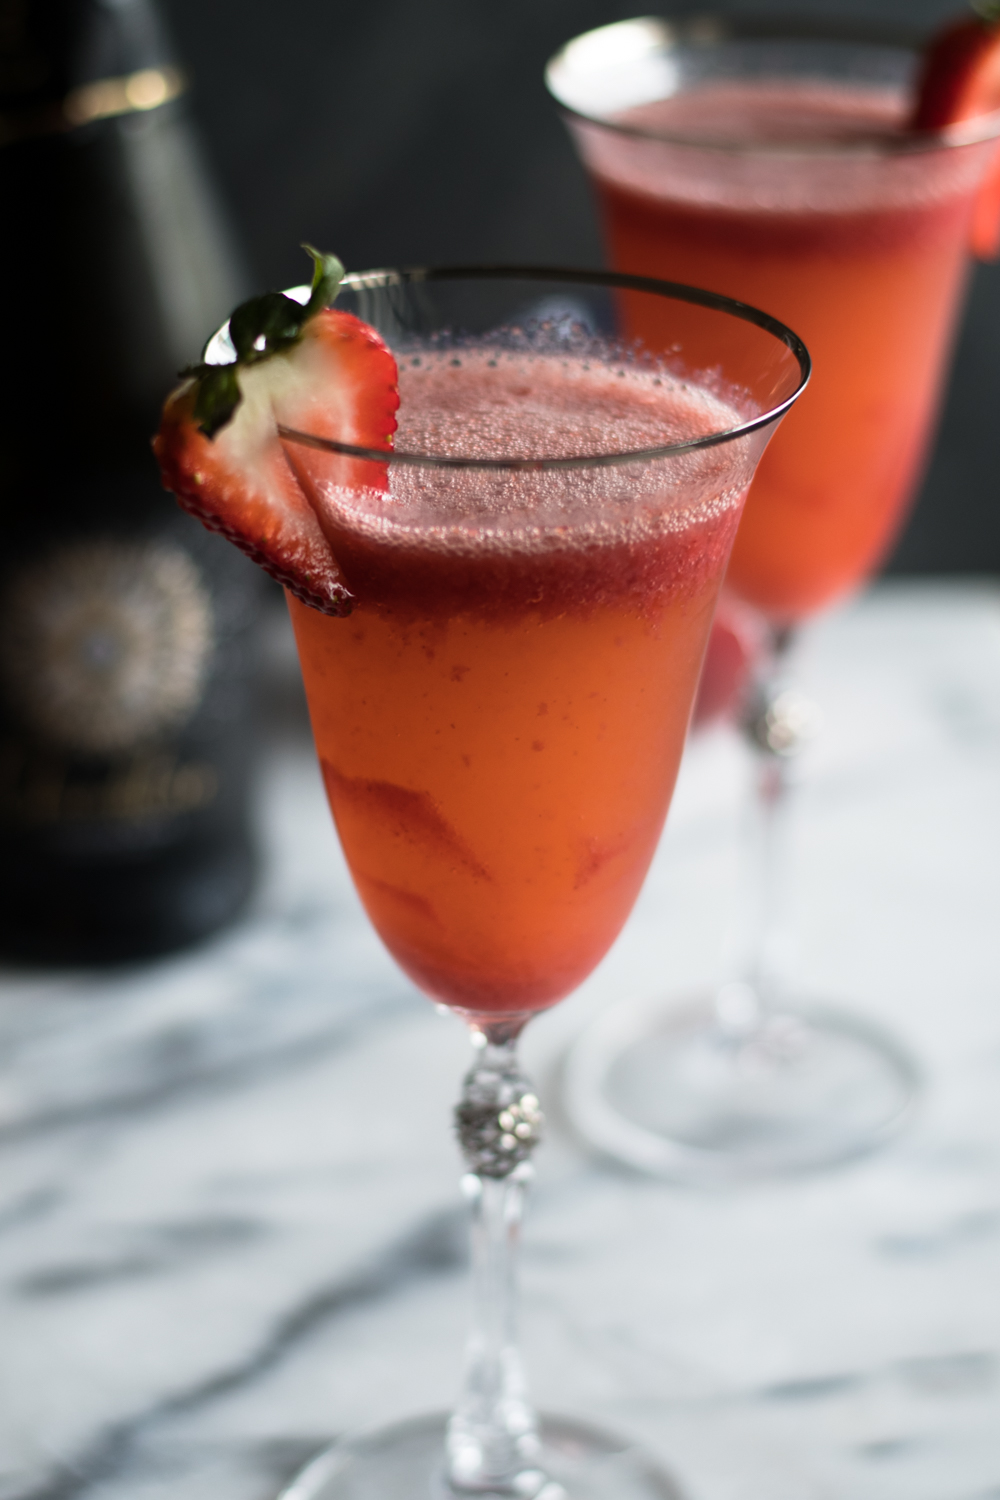 Strawberry Bellini is a twist on the classic peach bellini which is made with peach puree and sparkling wine. Instead of using peach puree, this cocktail uses a strawberry puree. #cocktail #wine #summer #recipe #strawberry